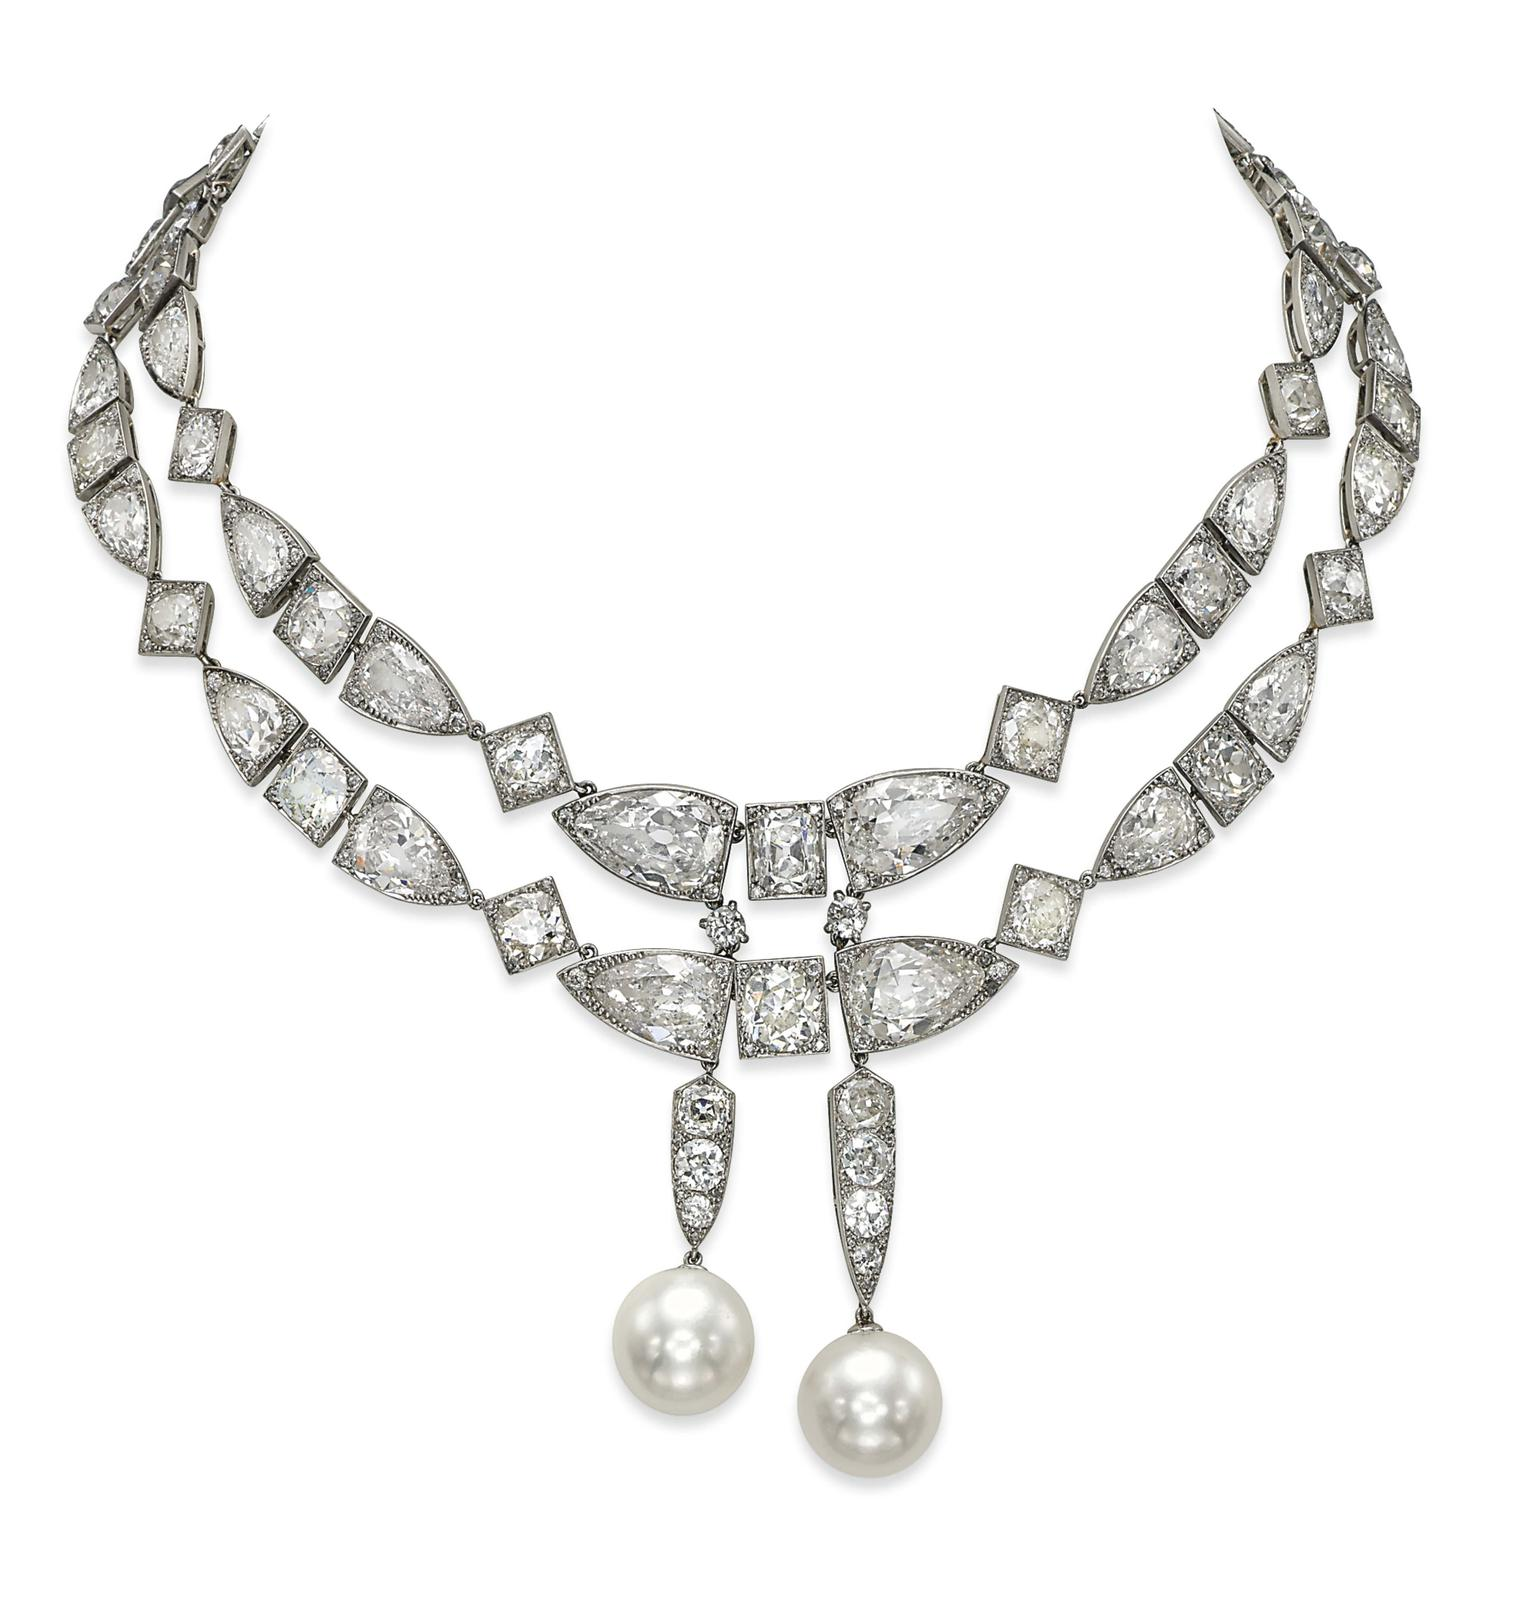 Also of note is an Art Deco natural pearl and diamond necklace from the private collection of Baroness Edouard de Rothschild, which sold for $5.19 million, more than five times its pre-sale estimate.